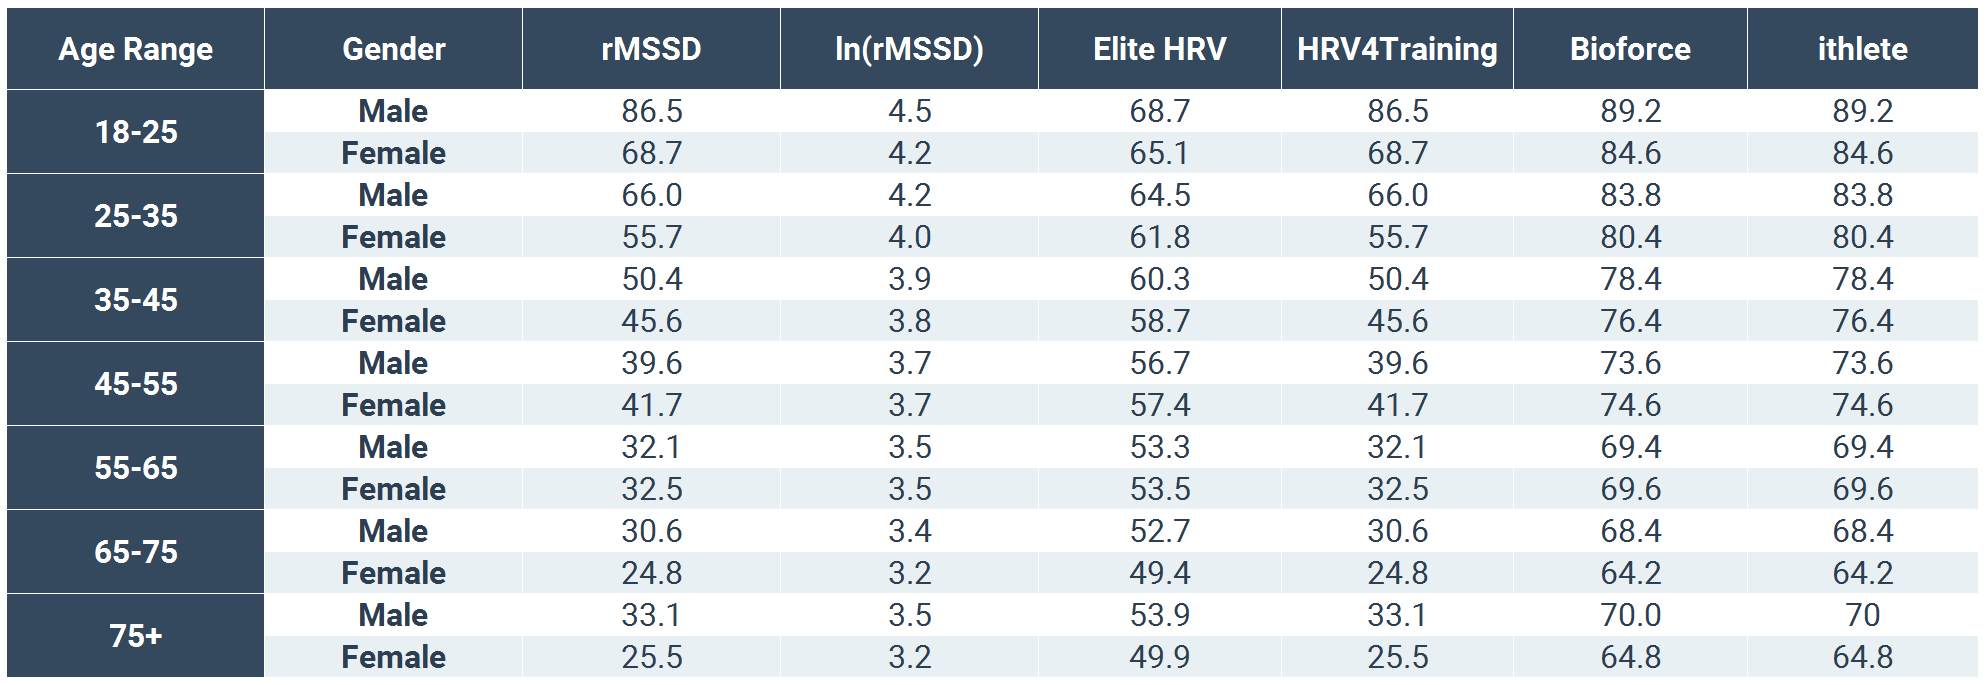 Normative elite hrv scores by age and gender elite hrv hrvplatformscomparison geenschuldenfo Images